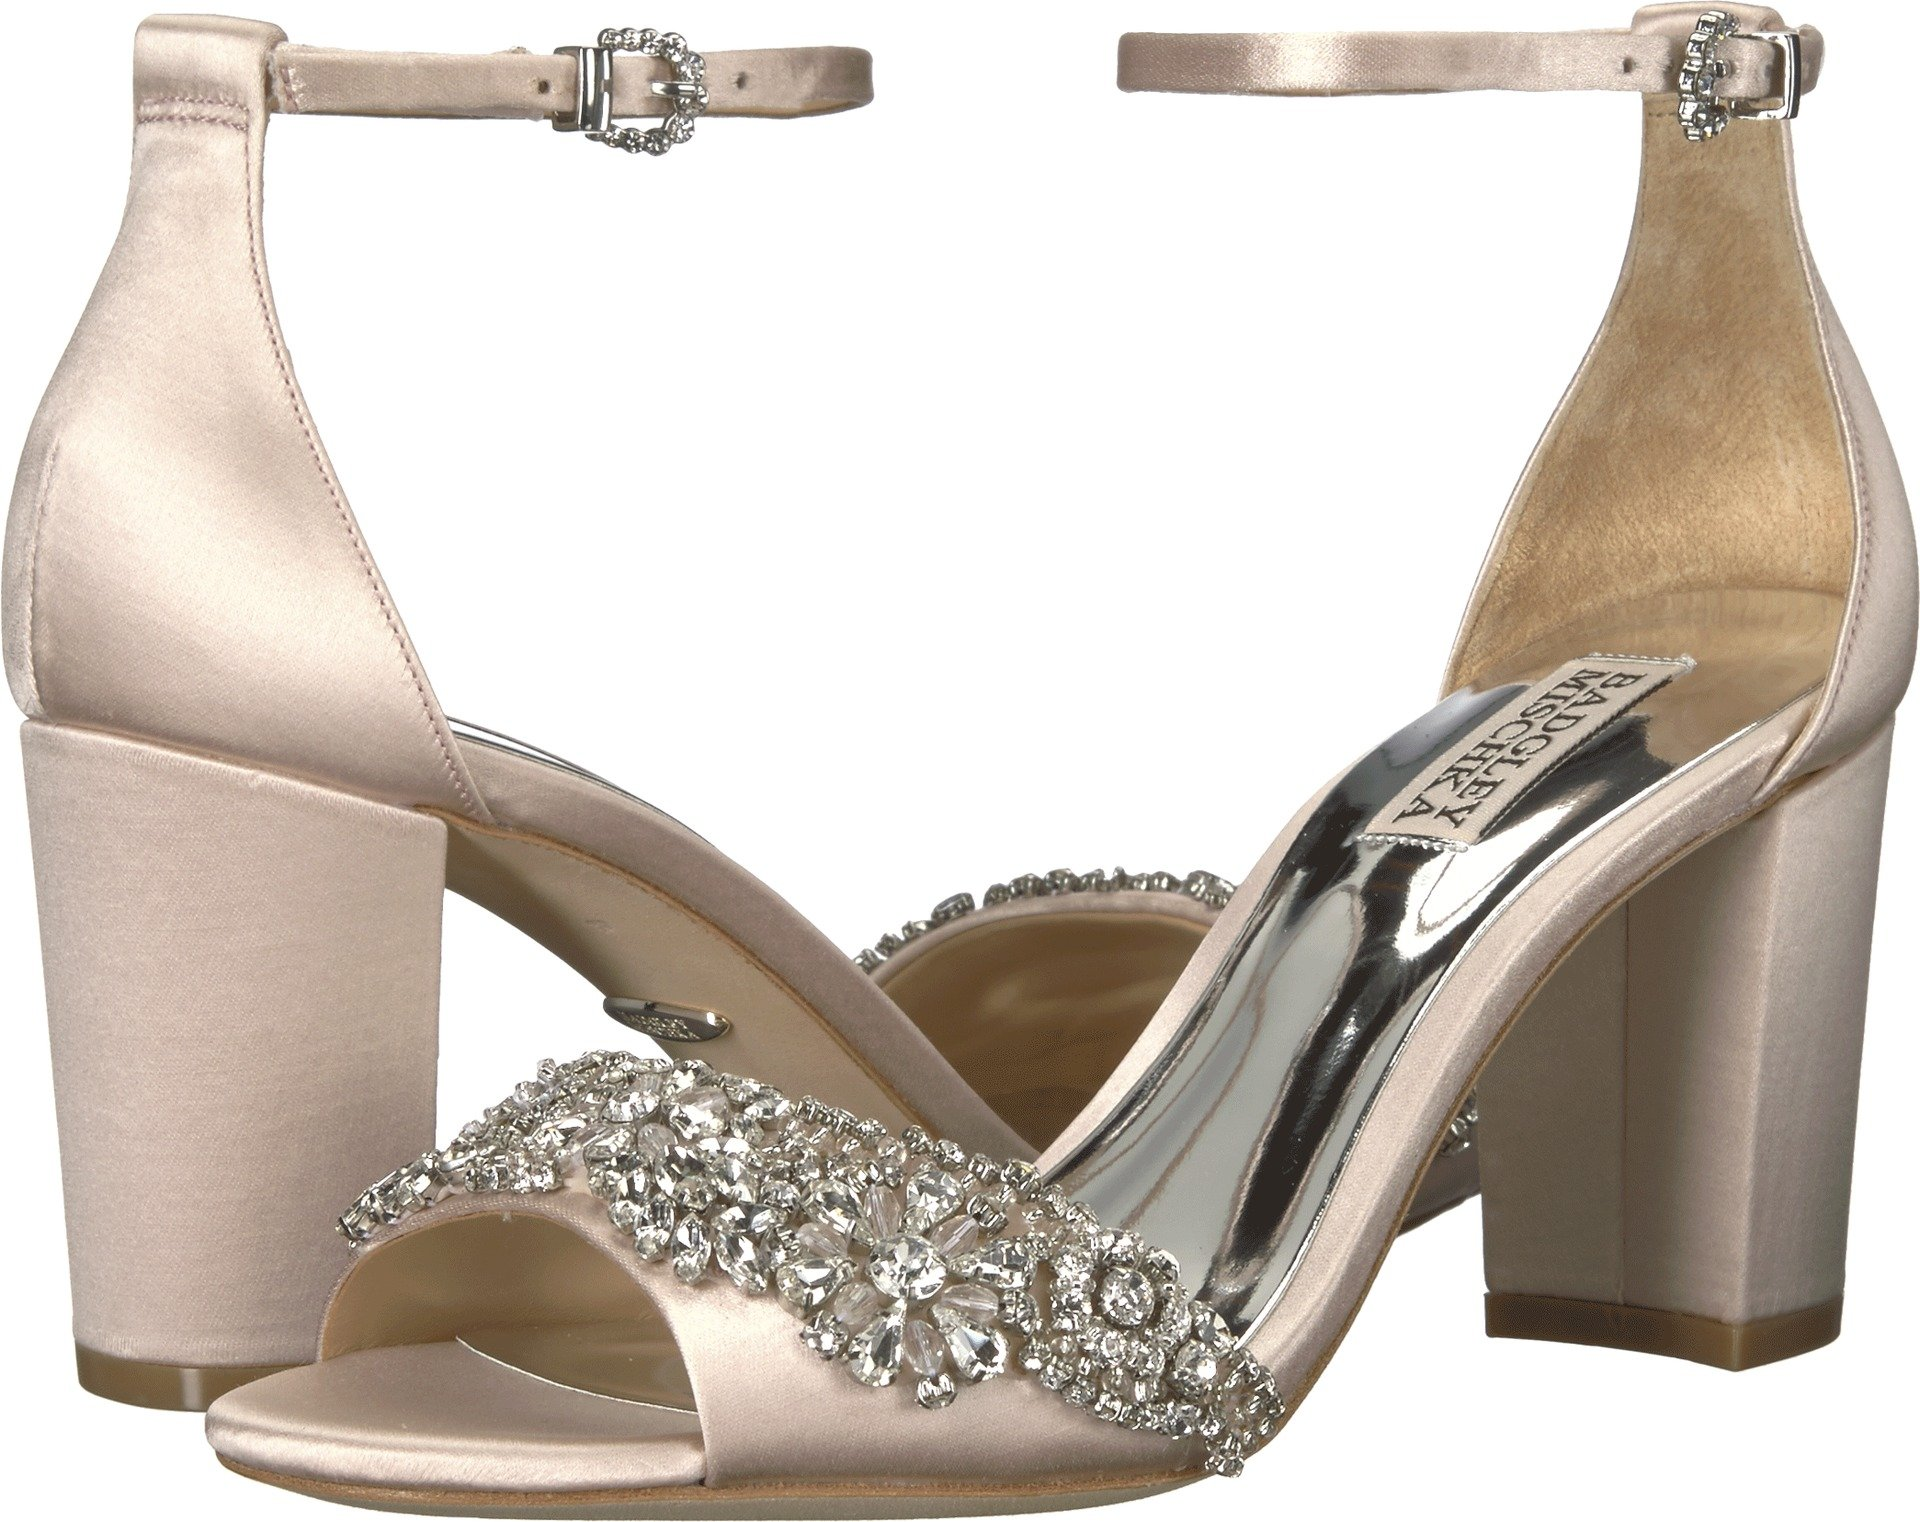 Badgley Mischka Women's Hines Heeled Sandal, Light Pink, 9.5 M US